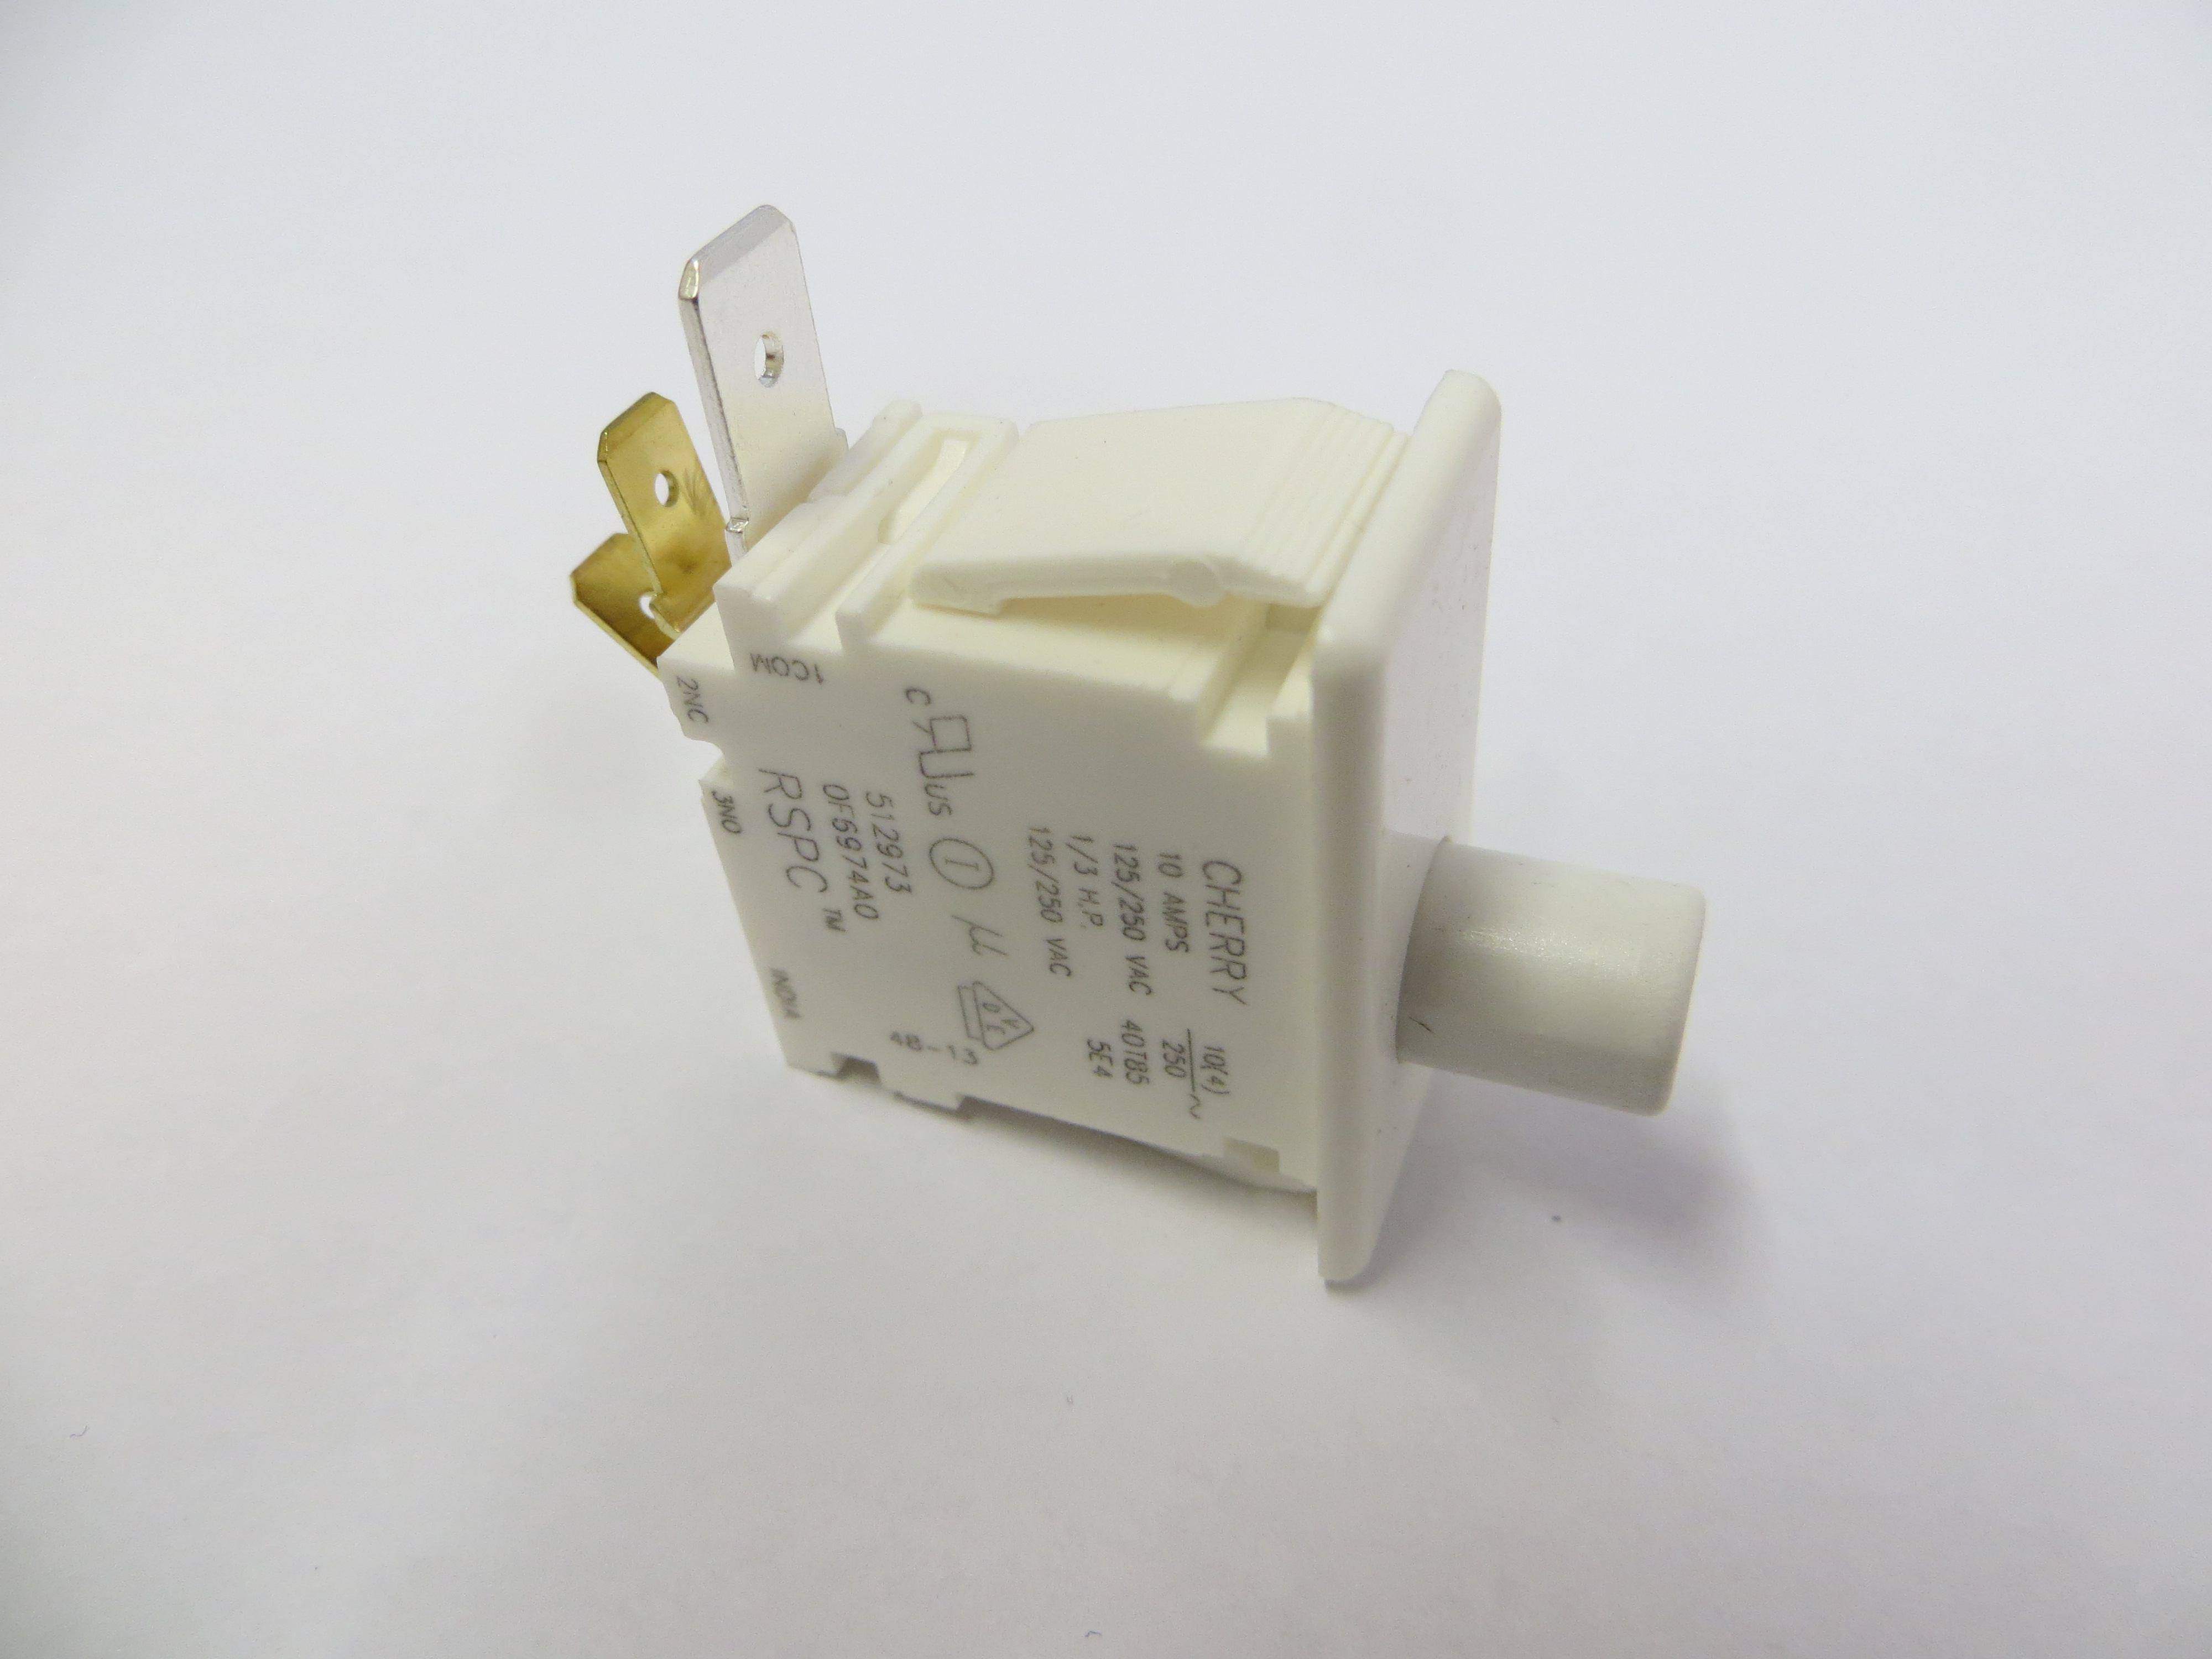 512973 - Push Button Switch